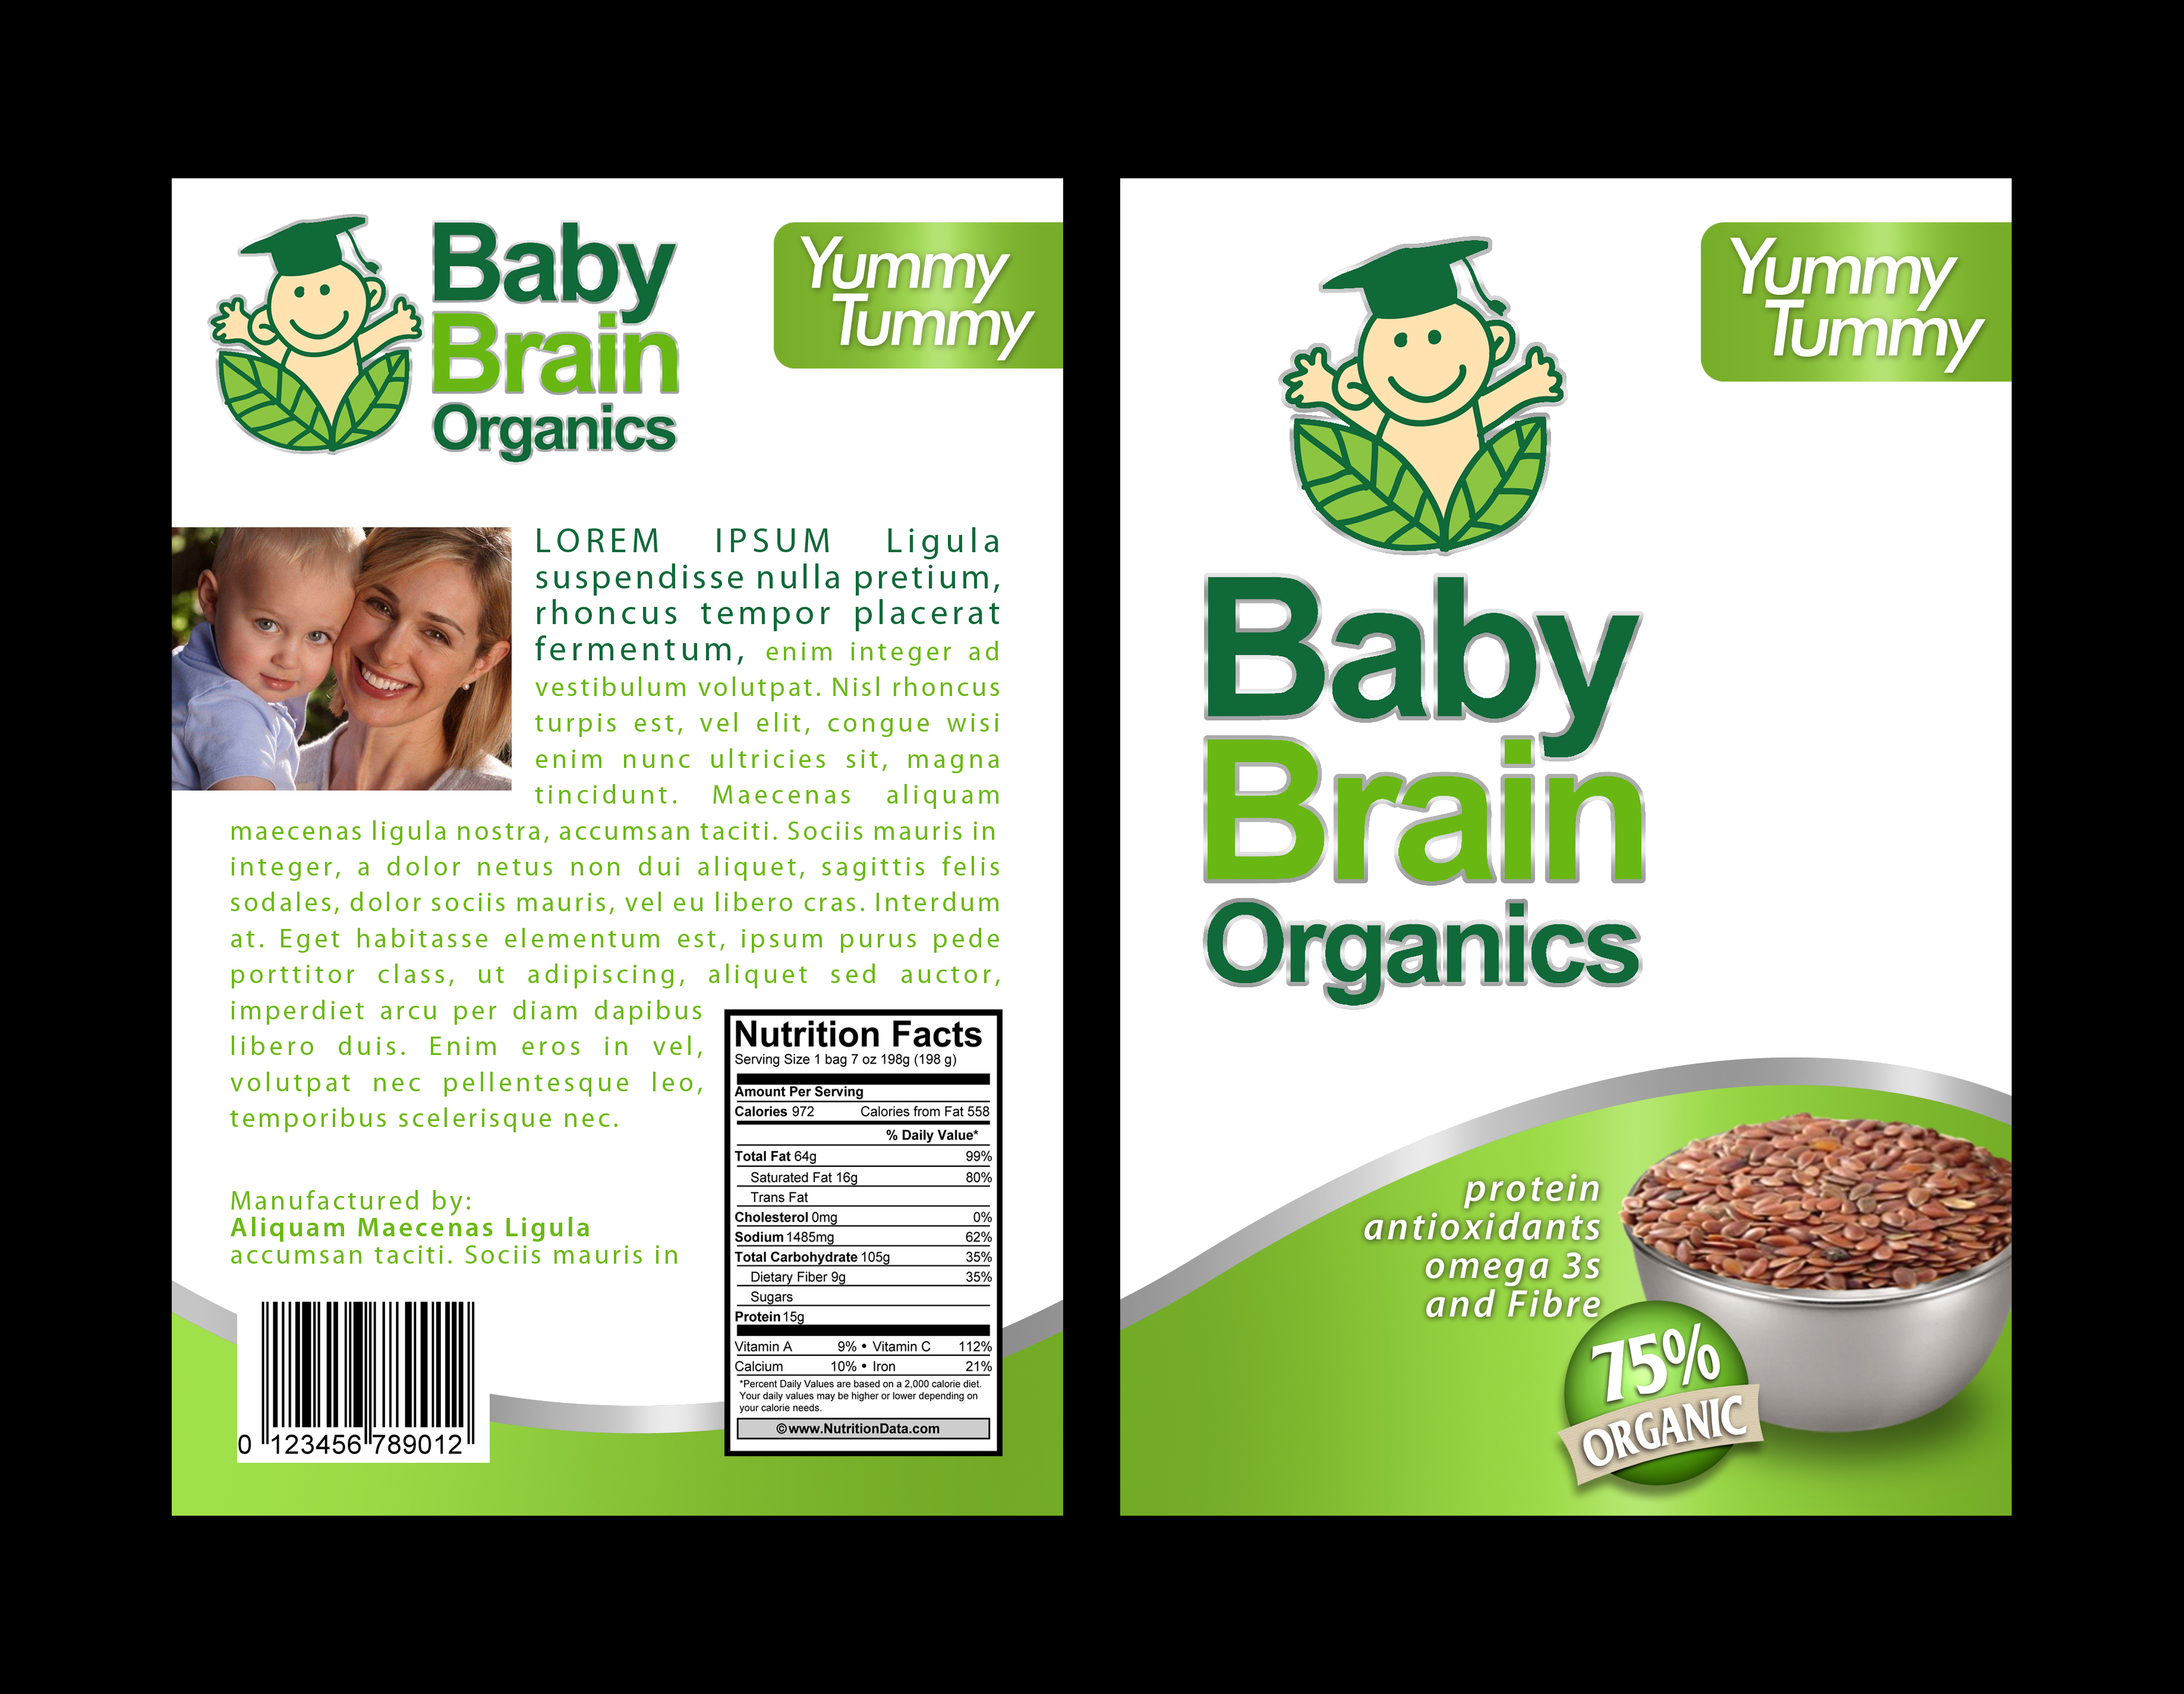 Packaging Design by moidgreat - Entry No. 71 in the Packaging Design Contest Baby Brain Organics Packaging Design.